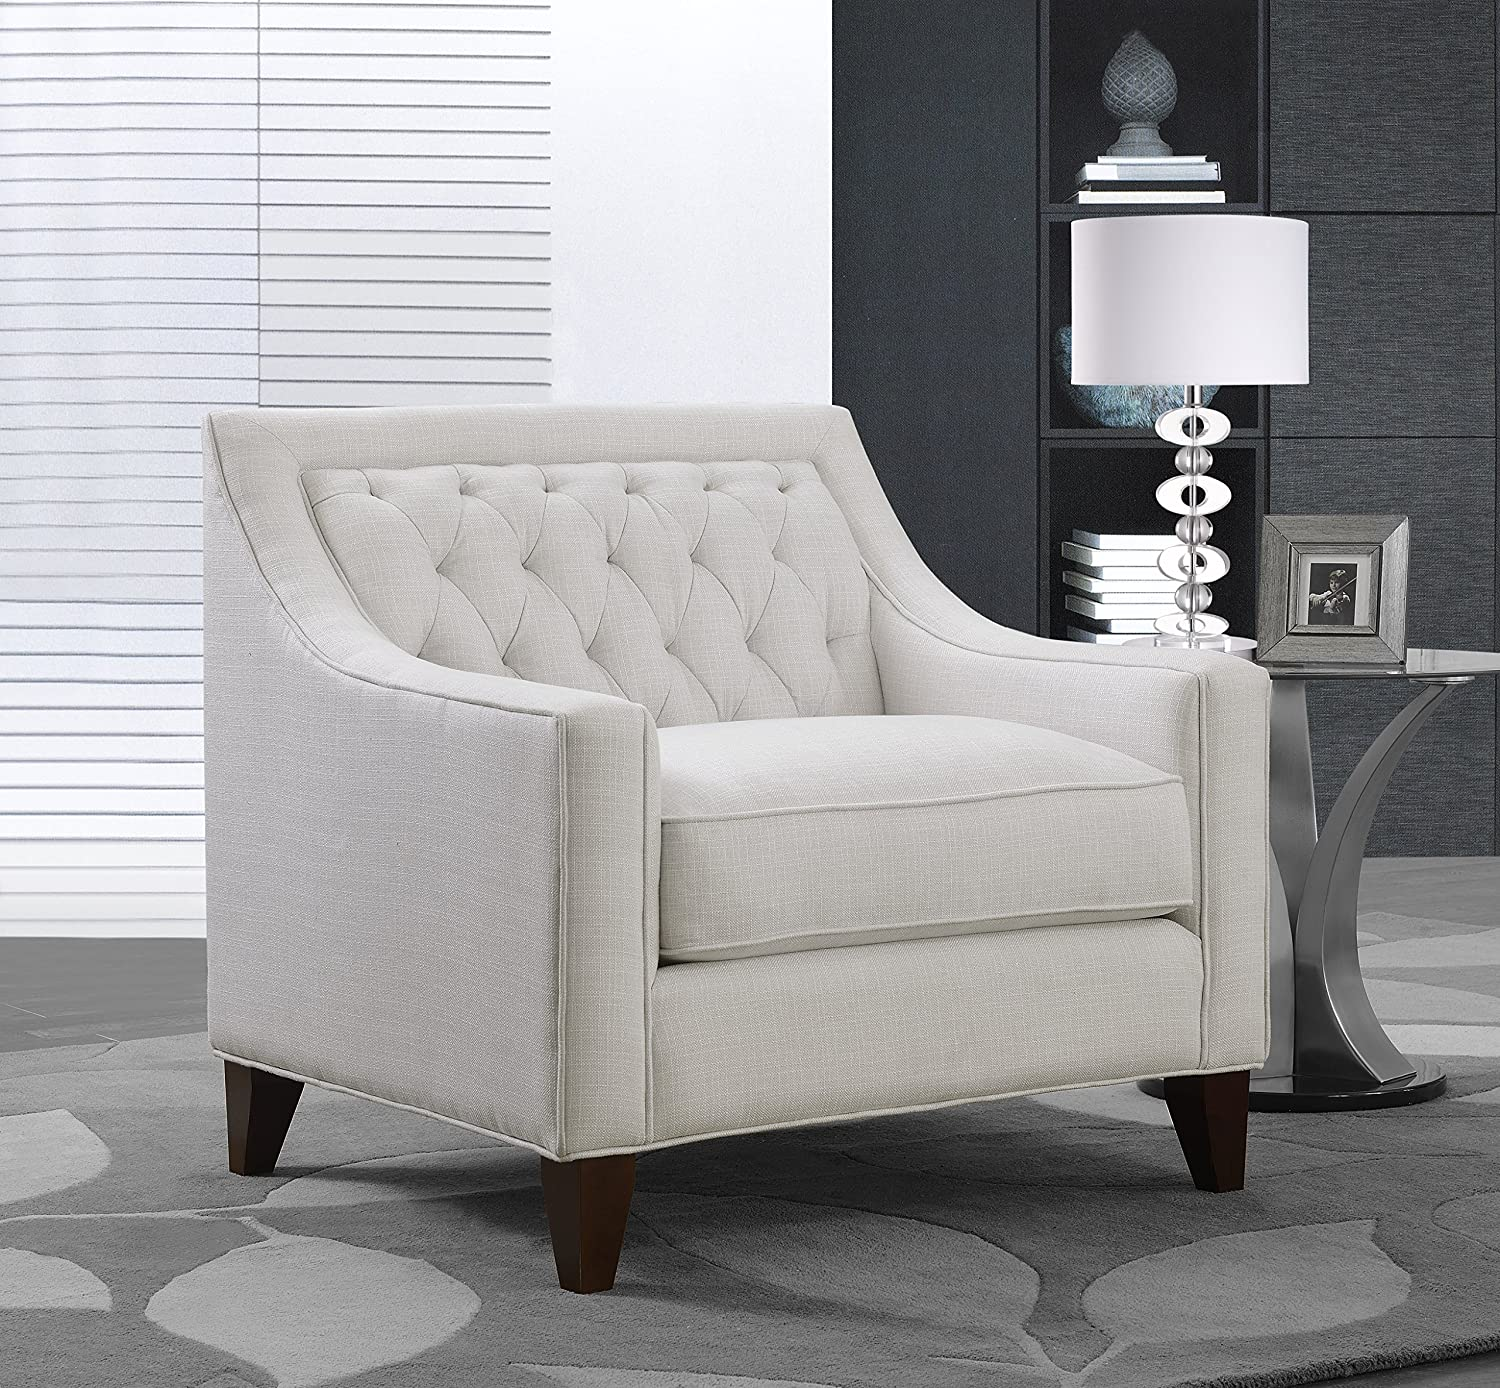 Iconic Home Aberdeen Linen Tufted Back Down Mix Modern Contemporary Club Chair, Beige